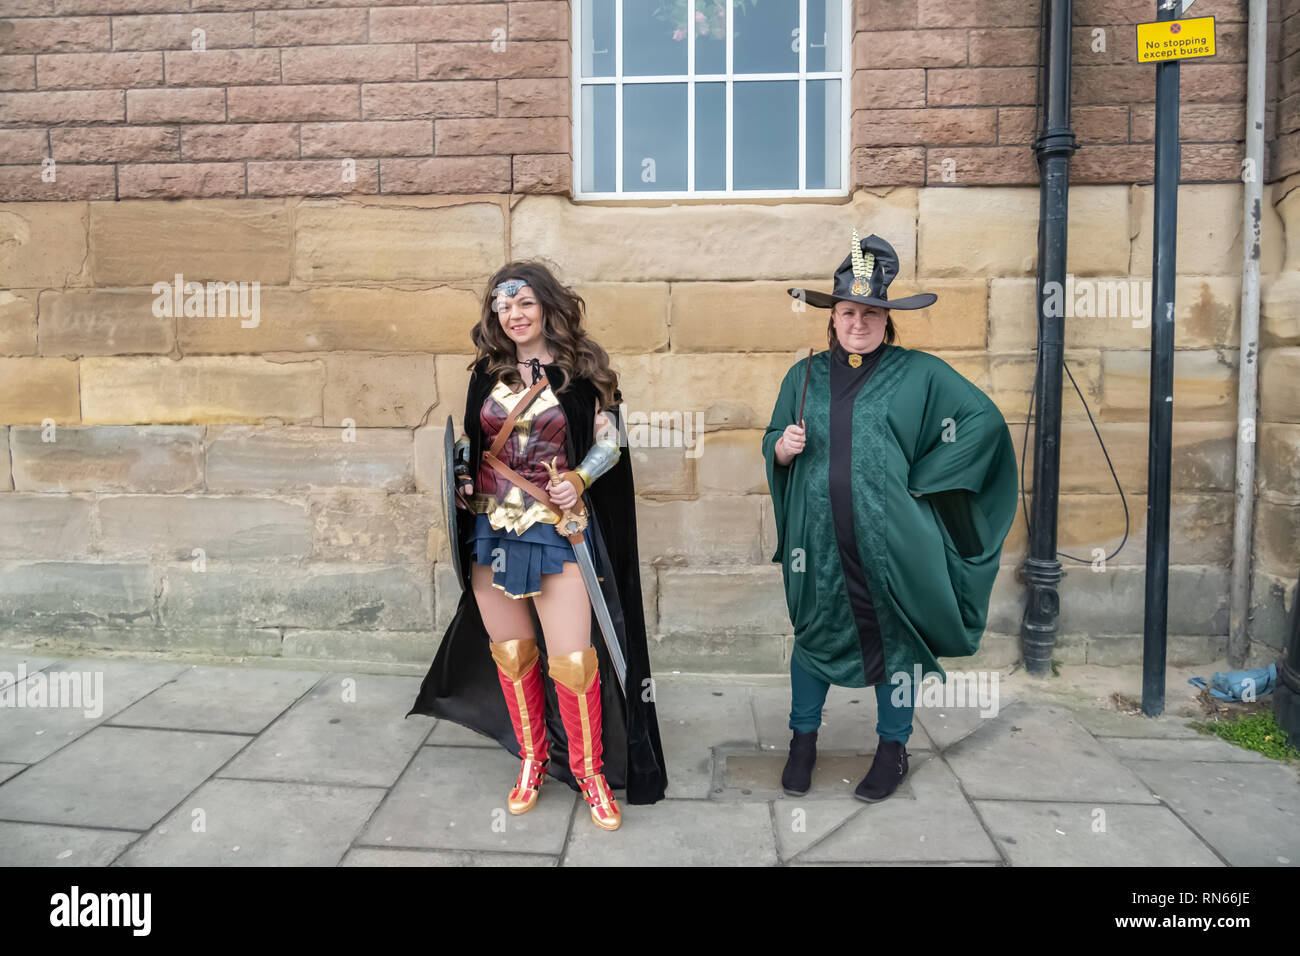 Edinburgh, Scotland, UK. 17th February, 2019. Cosplayers arriving on day three of the Capital Sci-Fi Con held at the Edinburgh Corn Exchange. Credit: Skully/Alamy Live News - Stock Image